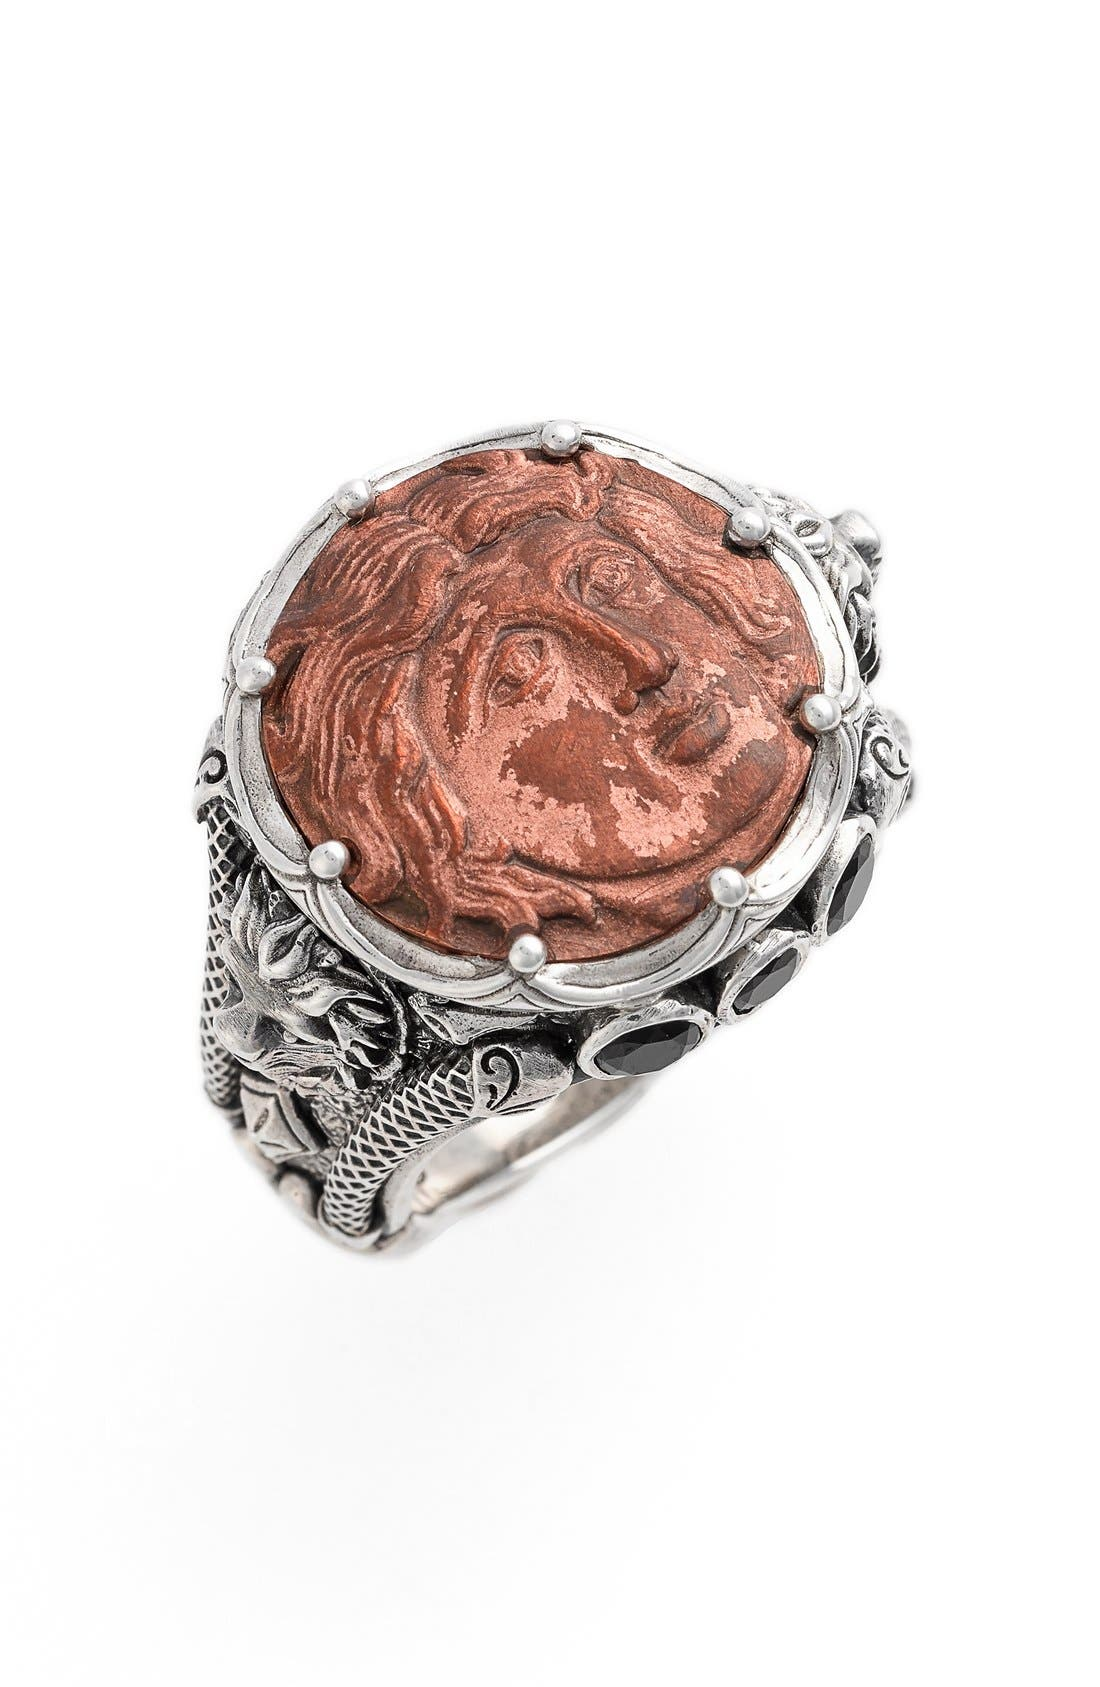 'Aeolous' Greek Coin Ring,                         Main,                         color, Copper/ Silver